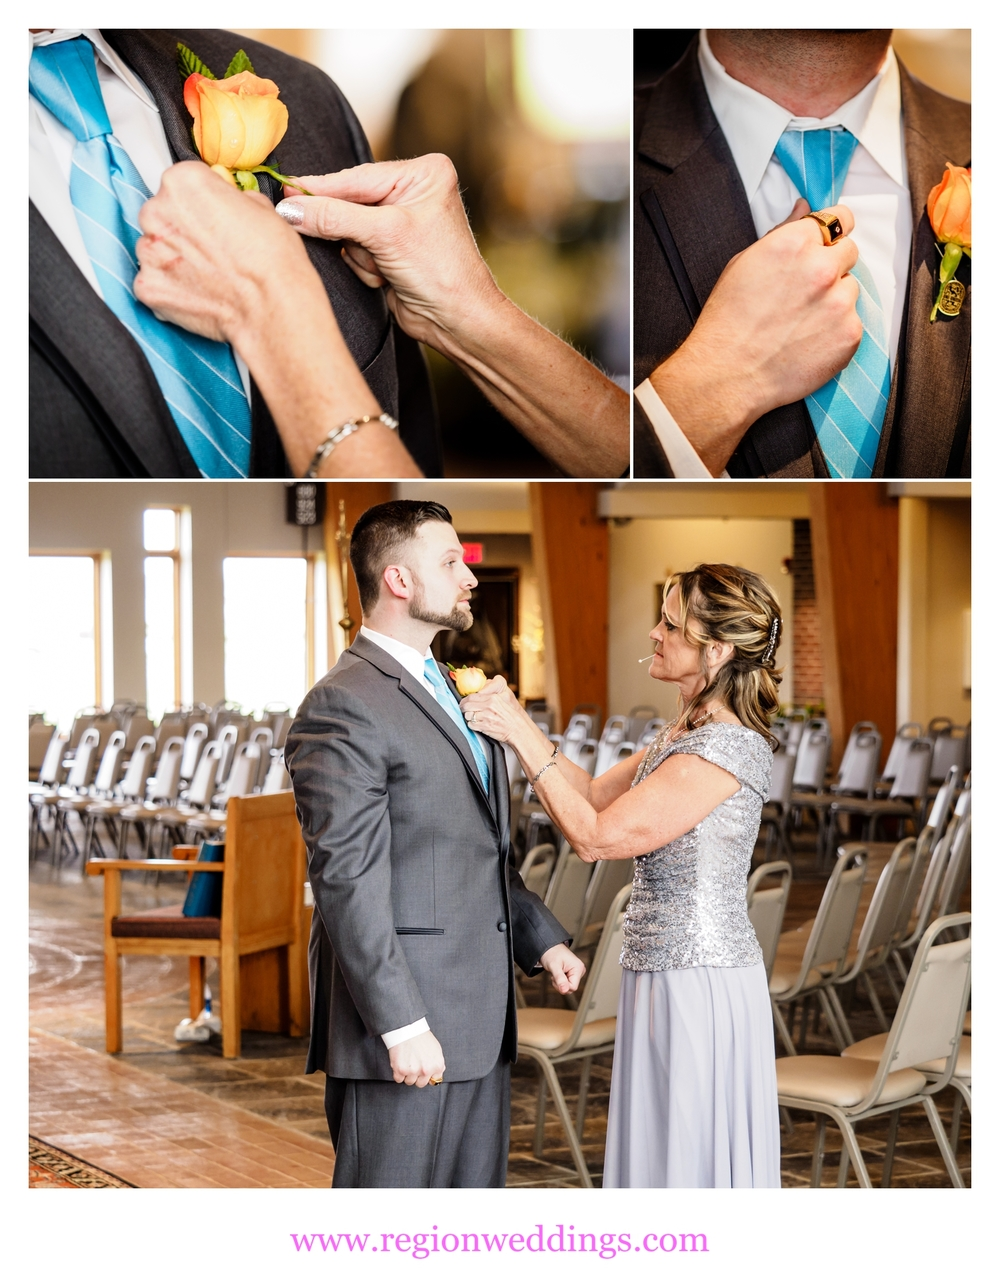 The mother of the groom secures the boutonniere.